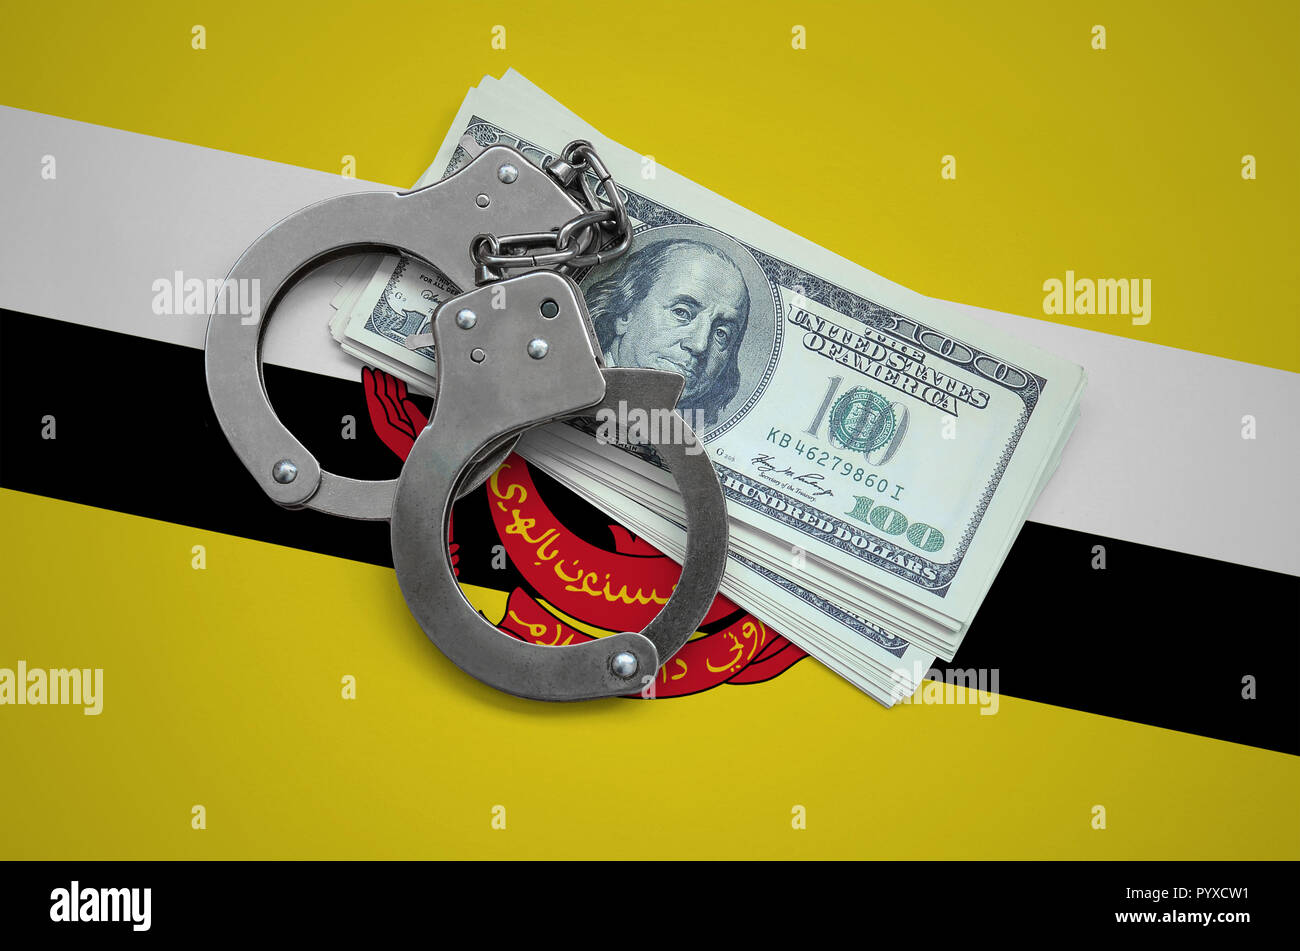 Brunei Darussalam flag  with handcuffs and a bundle of dollars. Currency corruption in the country. Financial crimes. - Stock Image